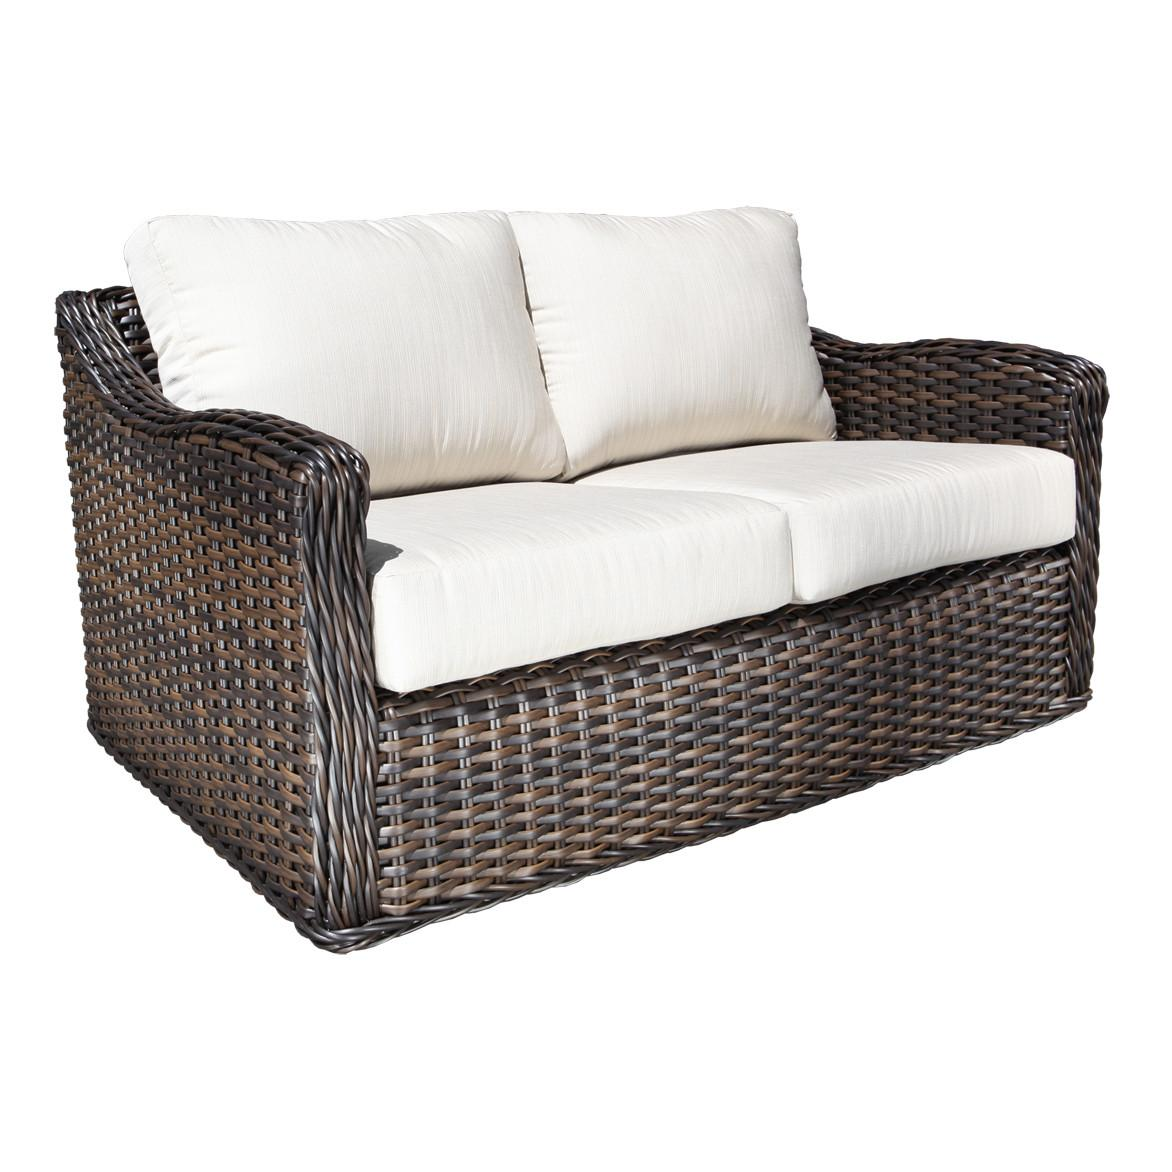 Cool Resin Wicker Patio Furniture All Weather Hgnv